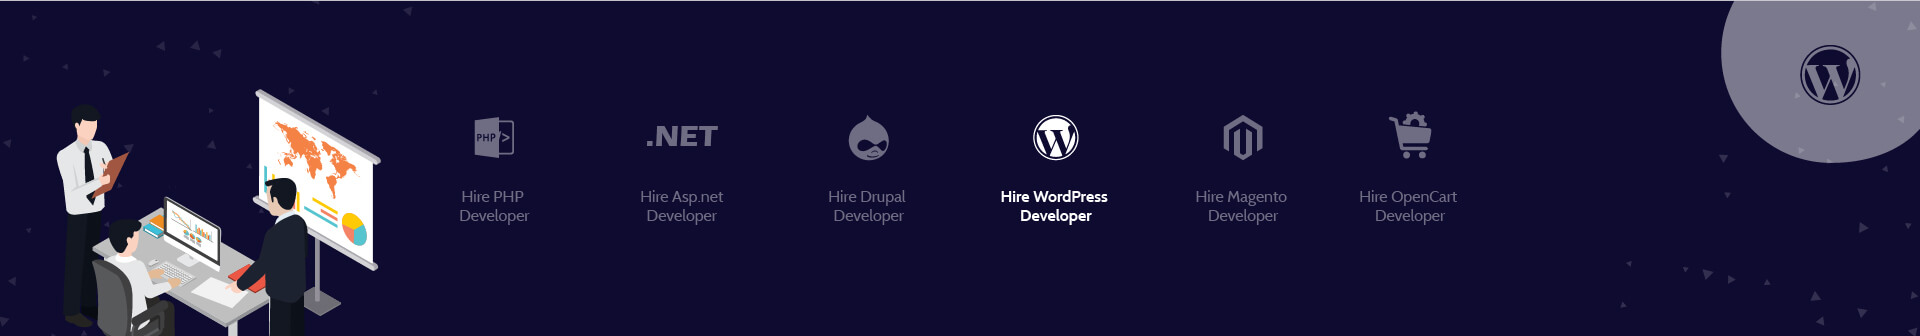 Hire Dedicated Wordpress Developer Hire Wordpress Experts - Developer